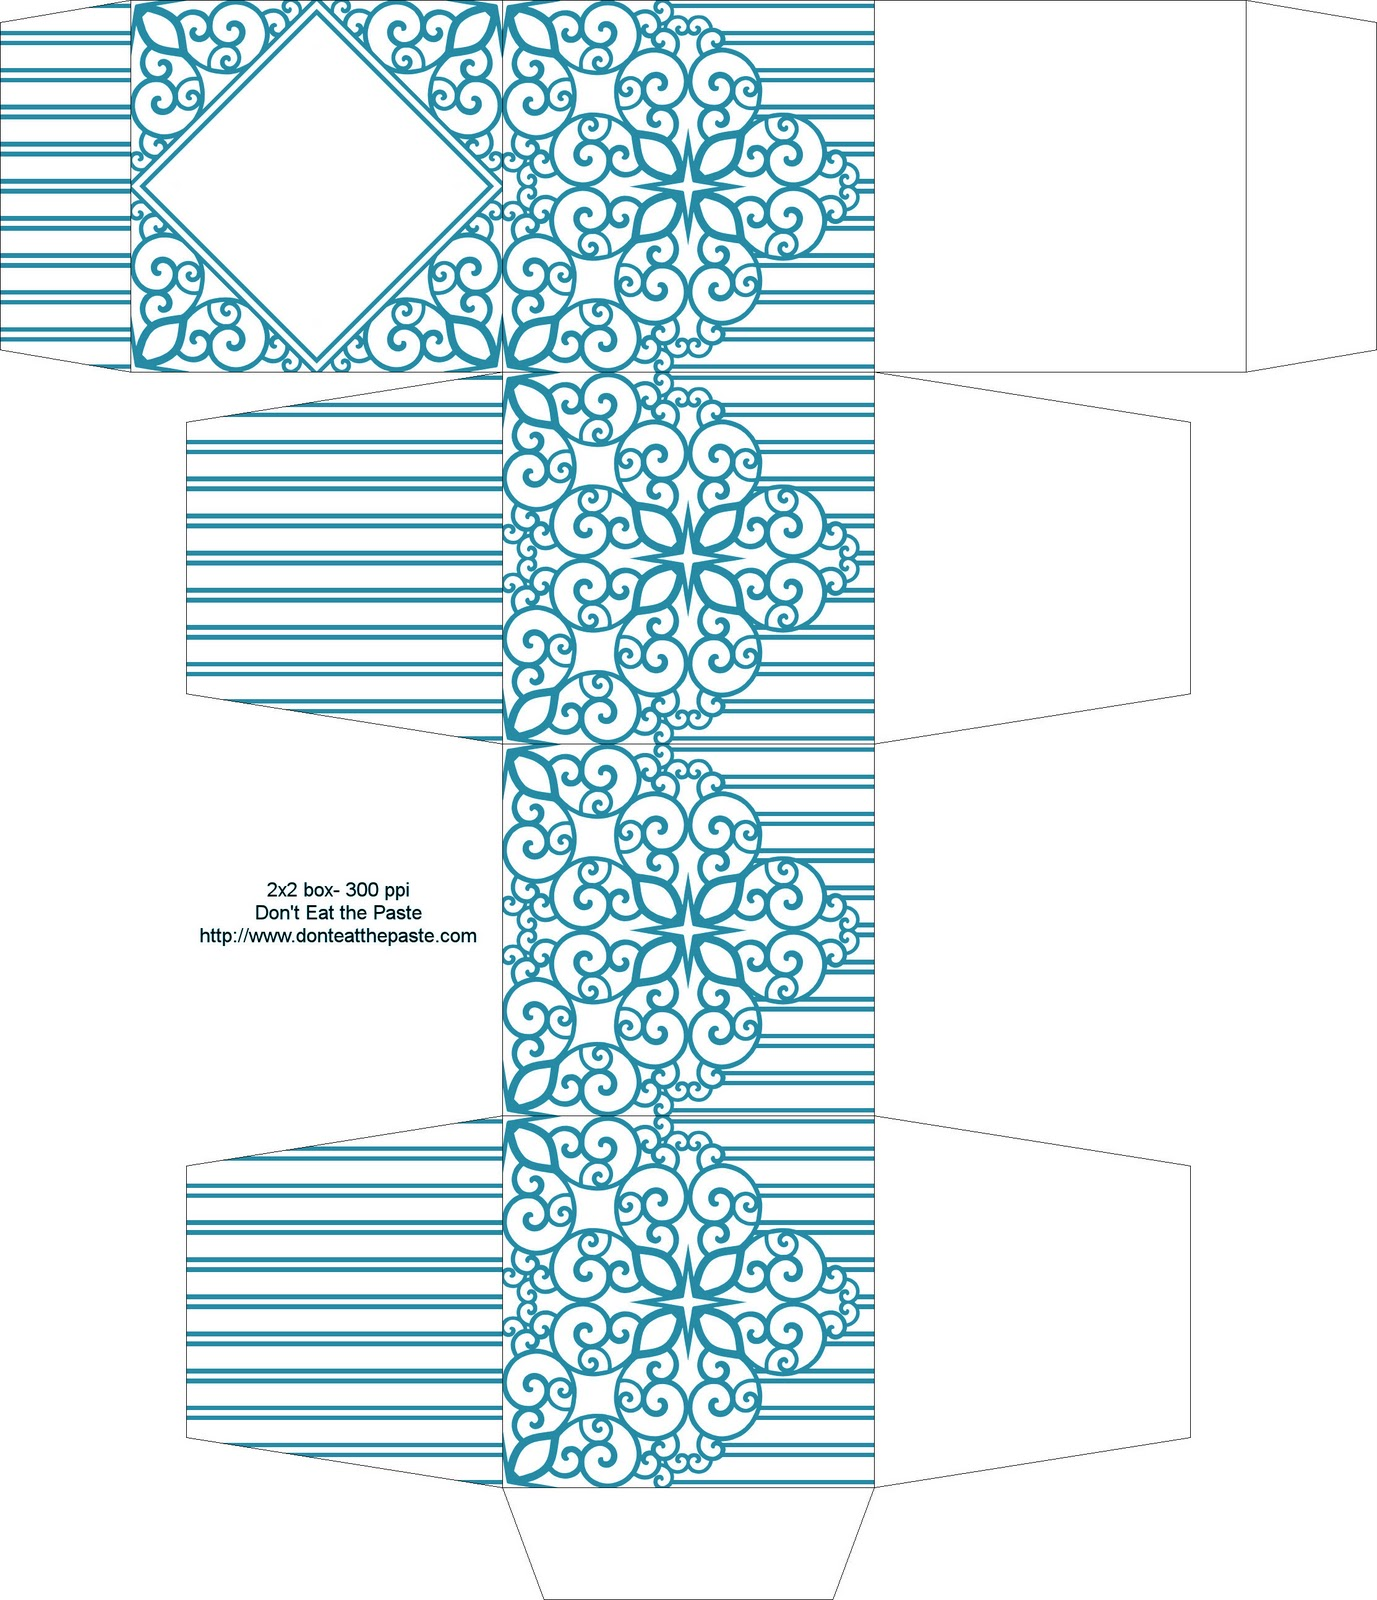 Free Wedding Gift Box Templates : If youre planning a DIY wedding, check out OnePrettyWedding and ...